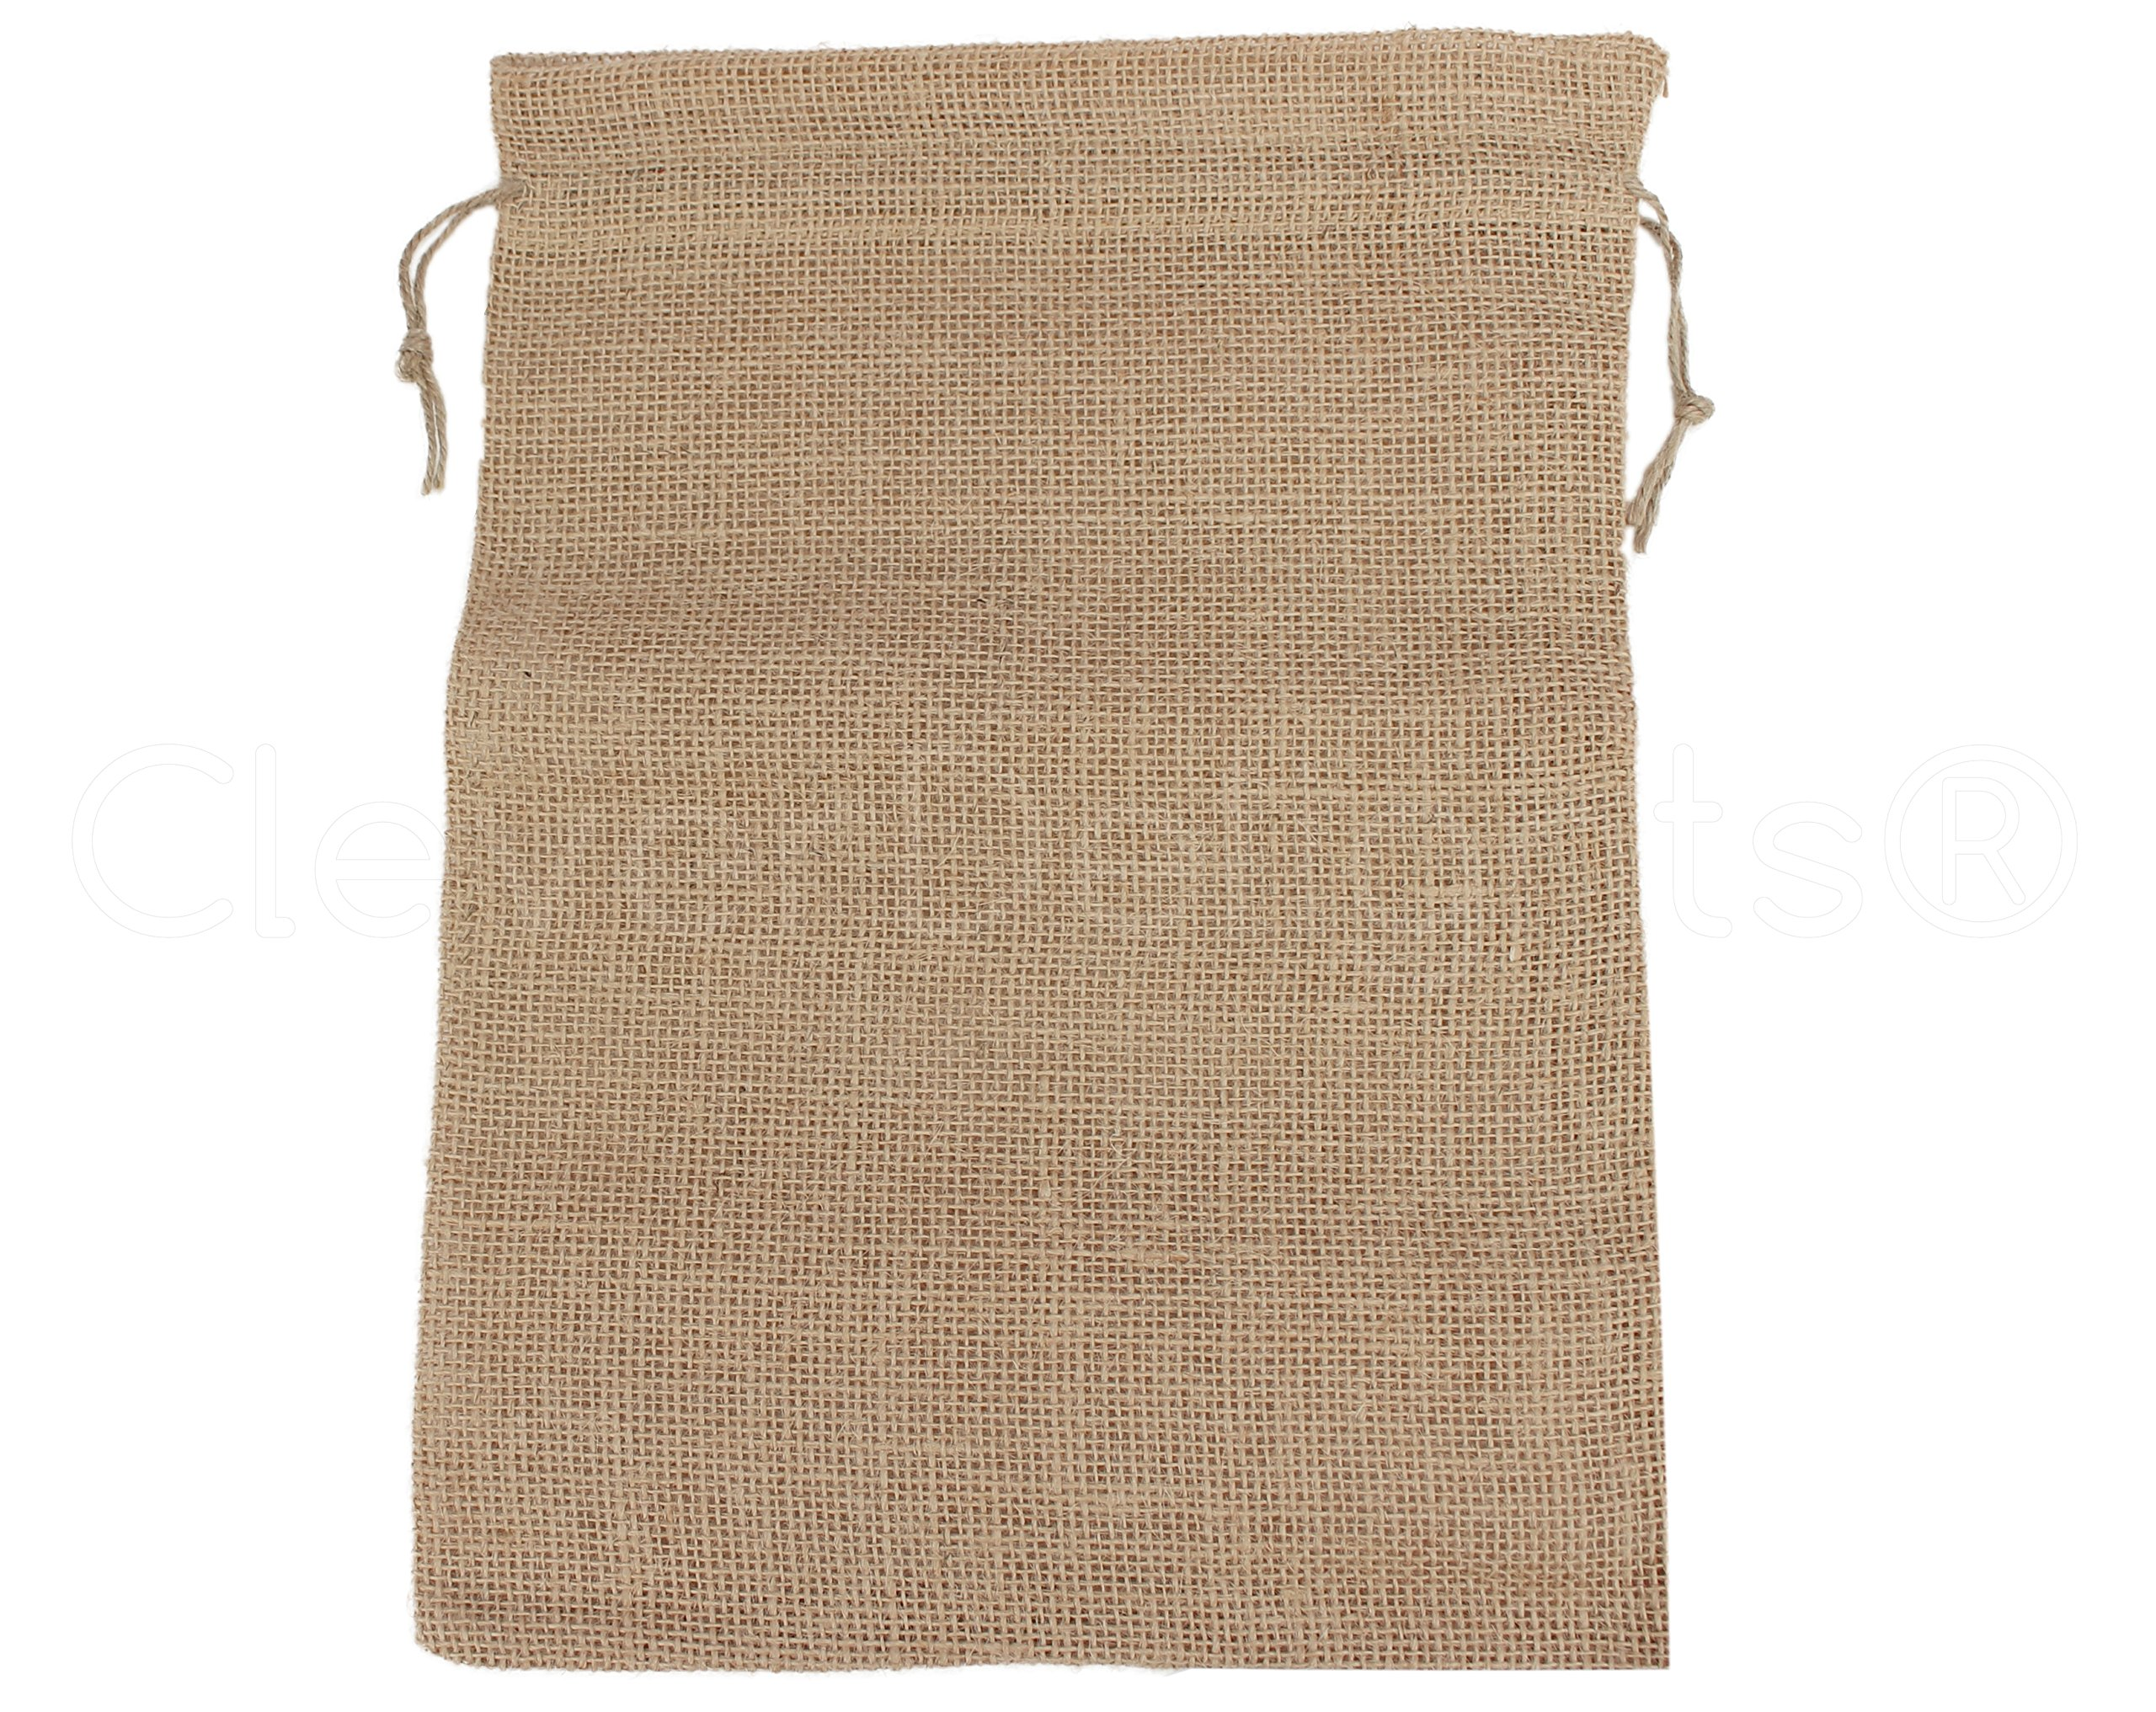 CleverDelights 10'' x 14'' Burlap Bags with Natural Jute Drawstring - 50 Pack - Large Burlap Pouch Sack Favor Bag for Showers Weddings Parties and Receptions - 10x14 inch by CleverDelights (Image #2)